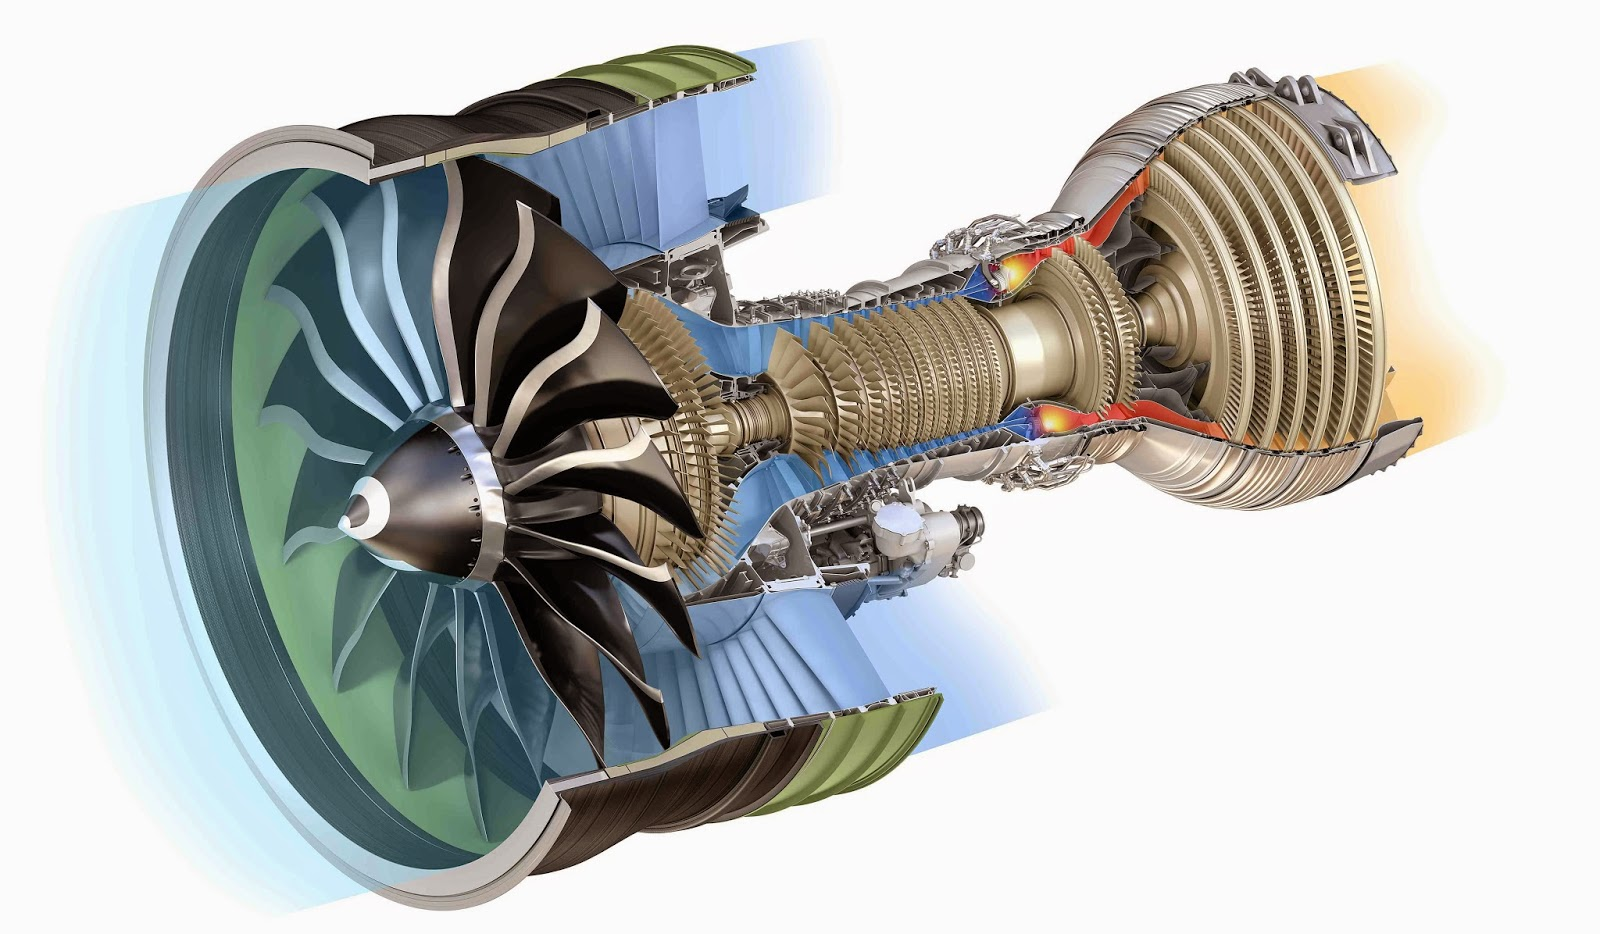 Mile High Colorado Air Breeds New Designs - The Old Motor Air motor design pictures